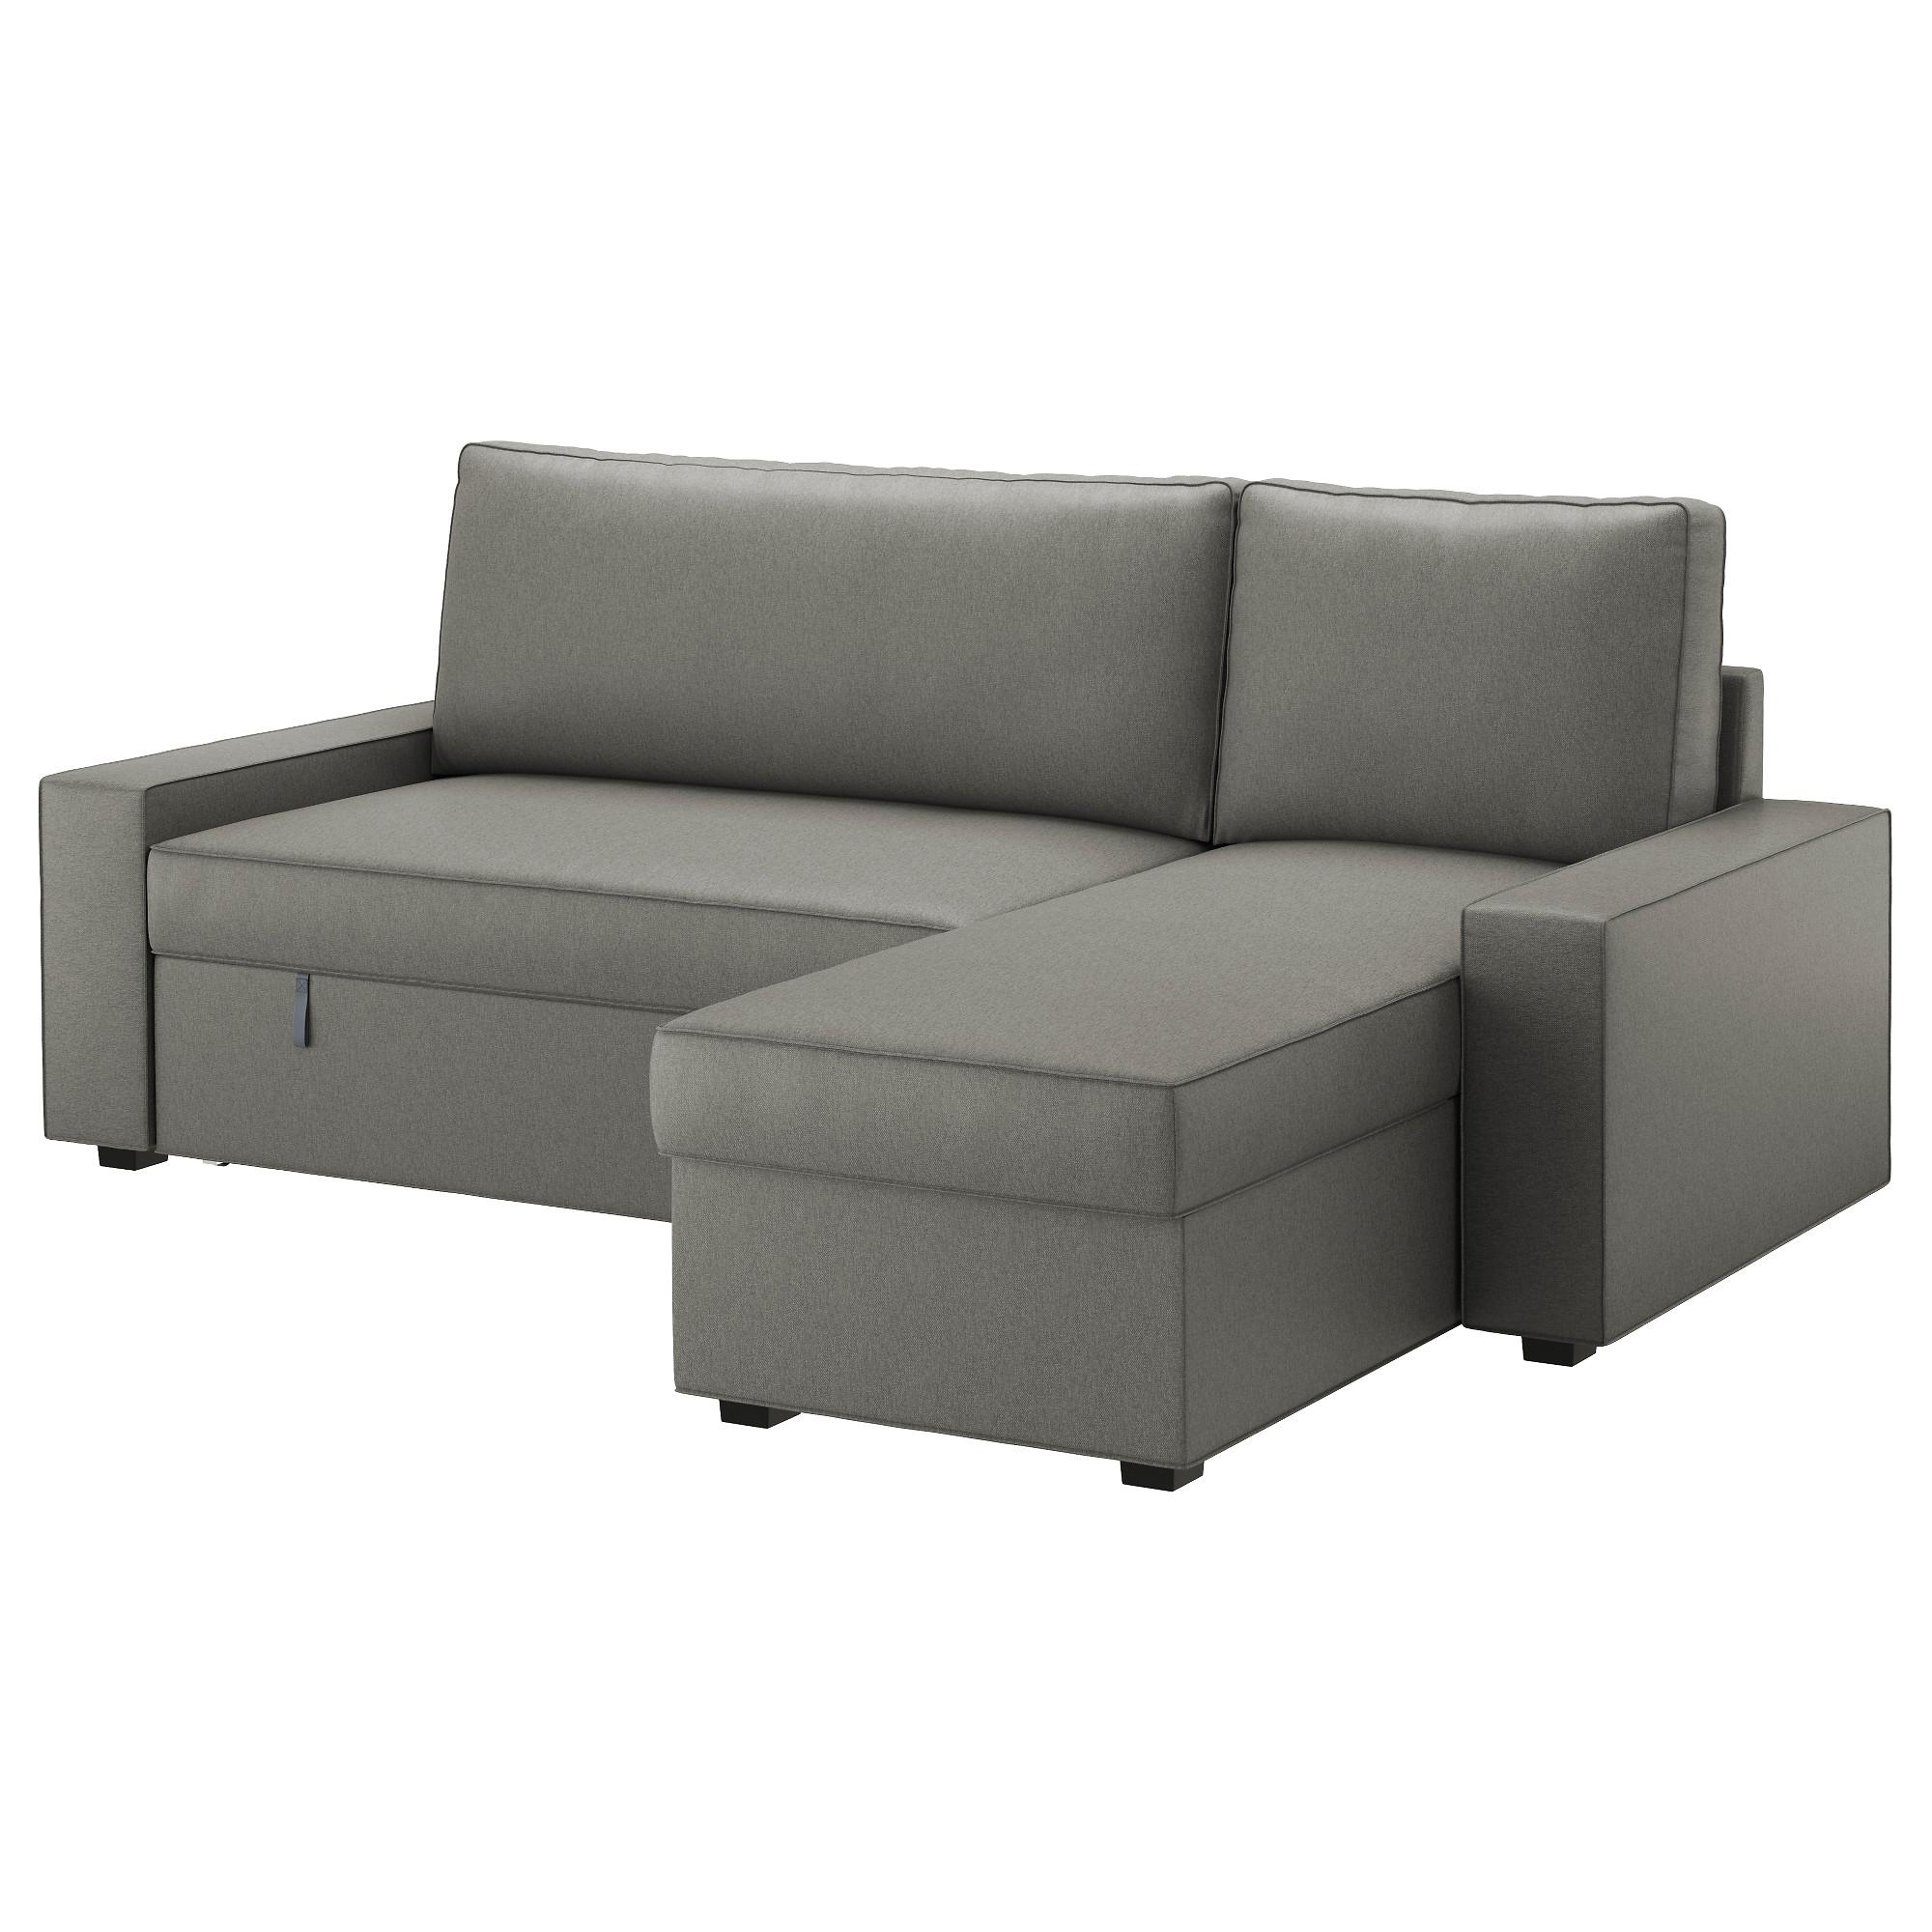 Vilasund Sofa Bed With Chaise Longue Borred Grey-Green - Ikea regarding Chaise Longue Sofa Beds